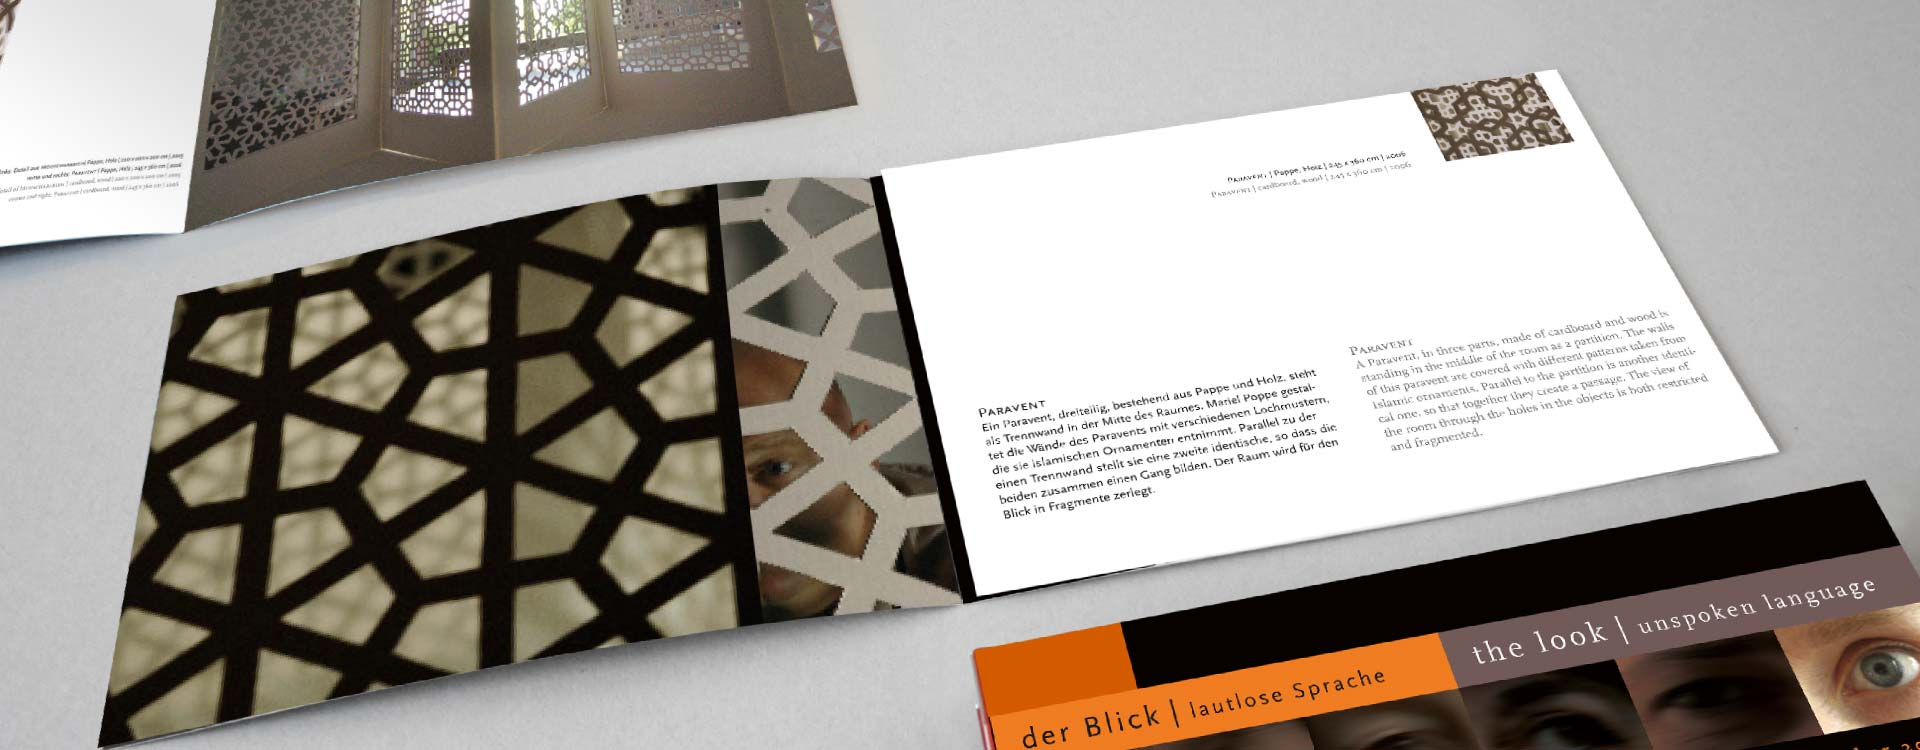 Leaflet about the work of Mariel Poppe in the exhibition Der Blick; Design: Kattrin Richter | Graphic Design Studio